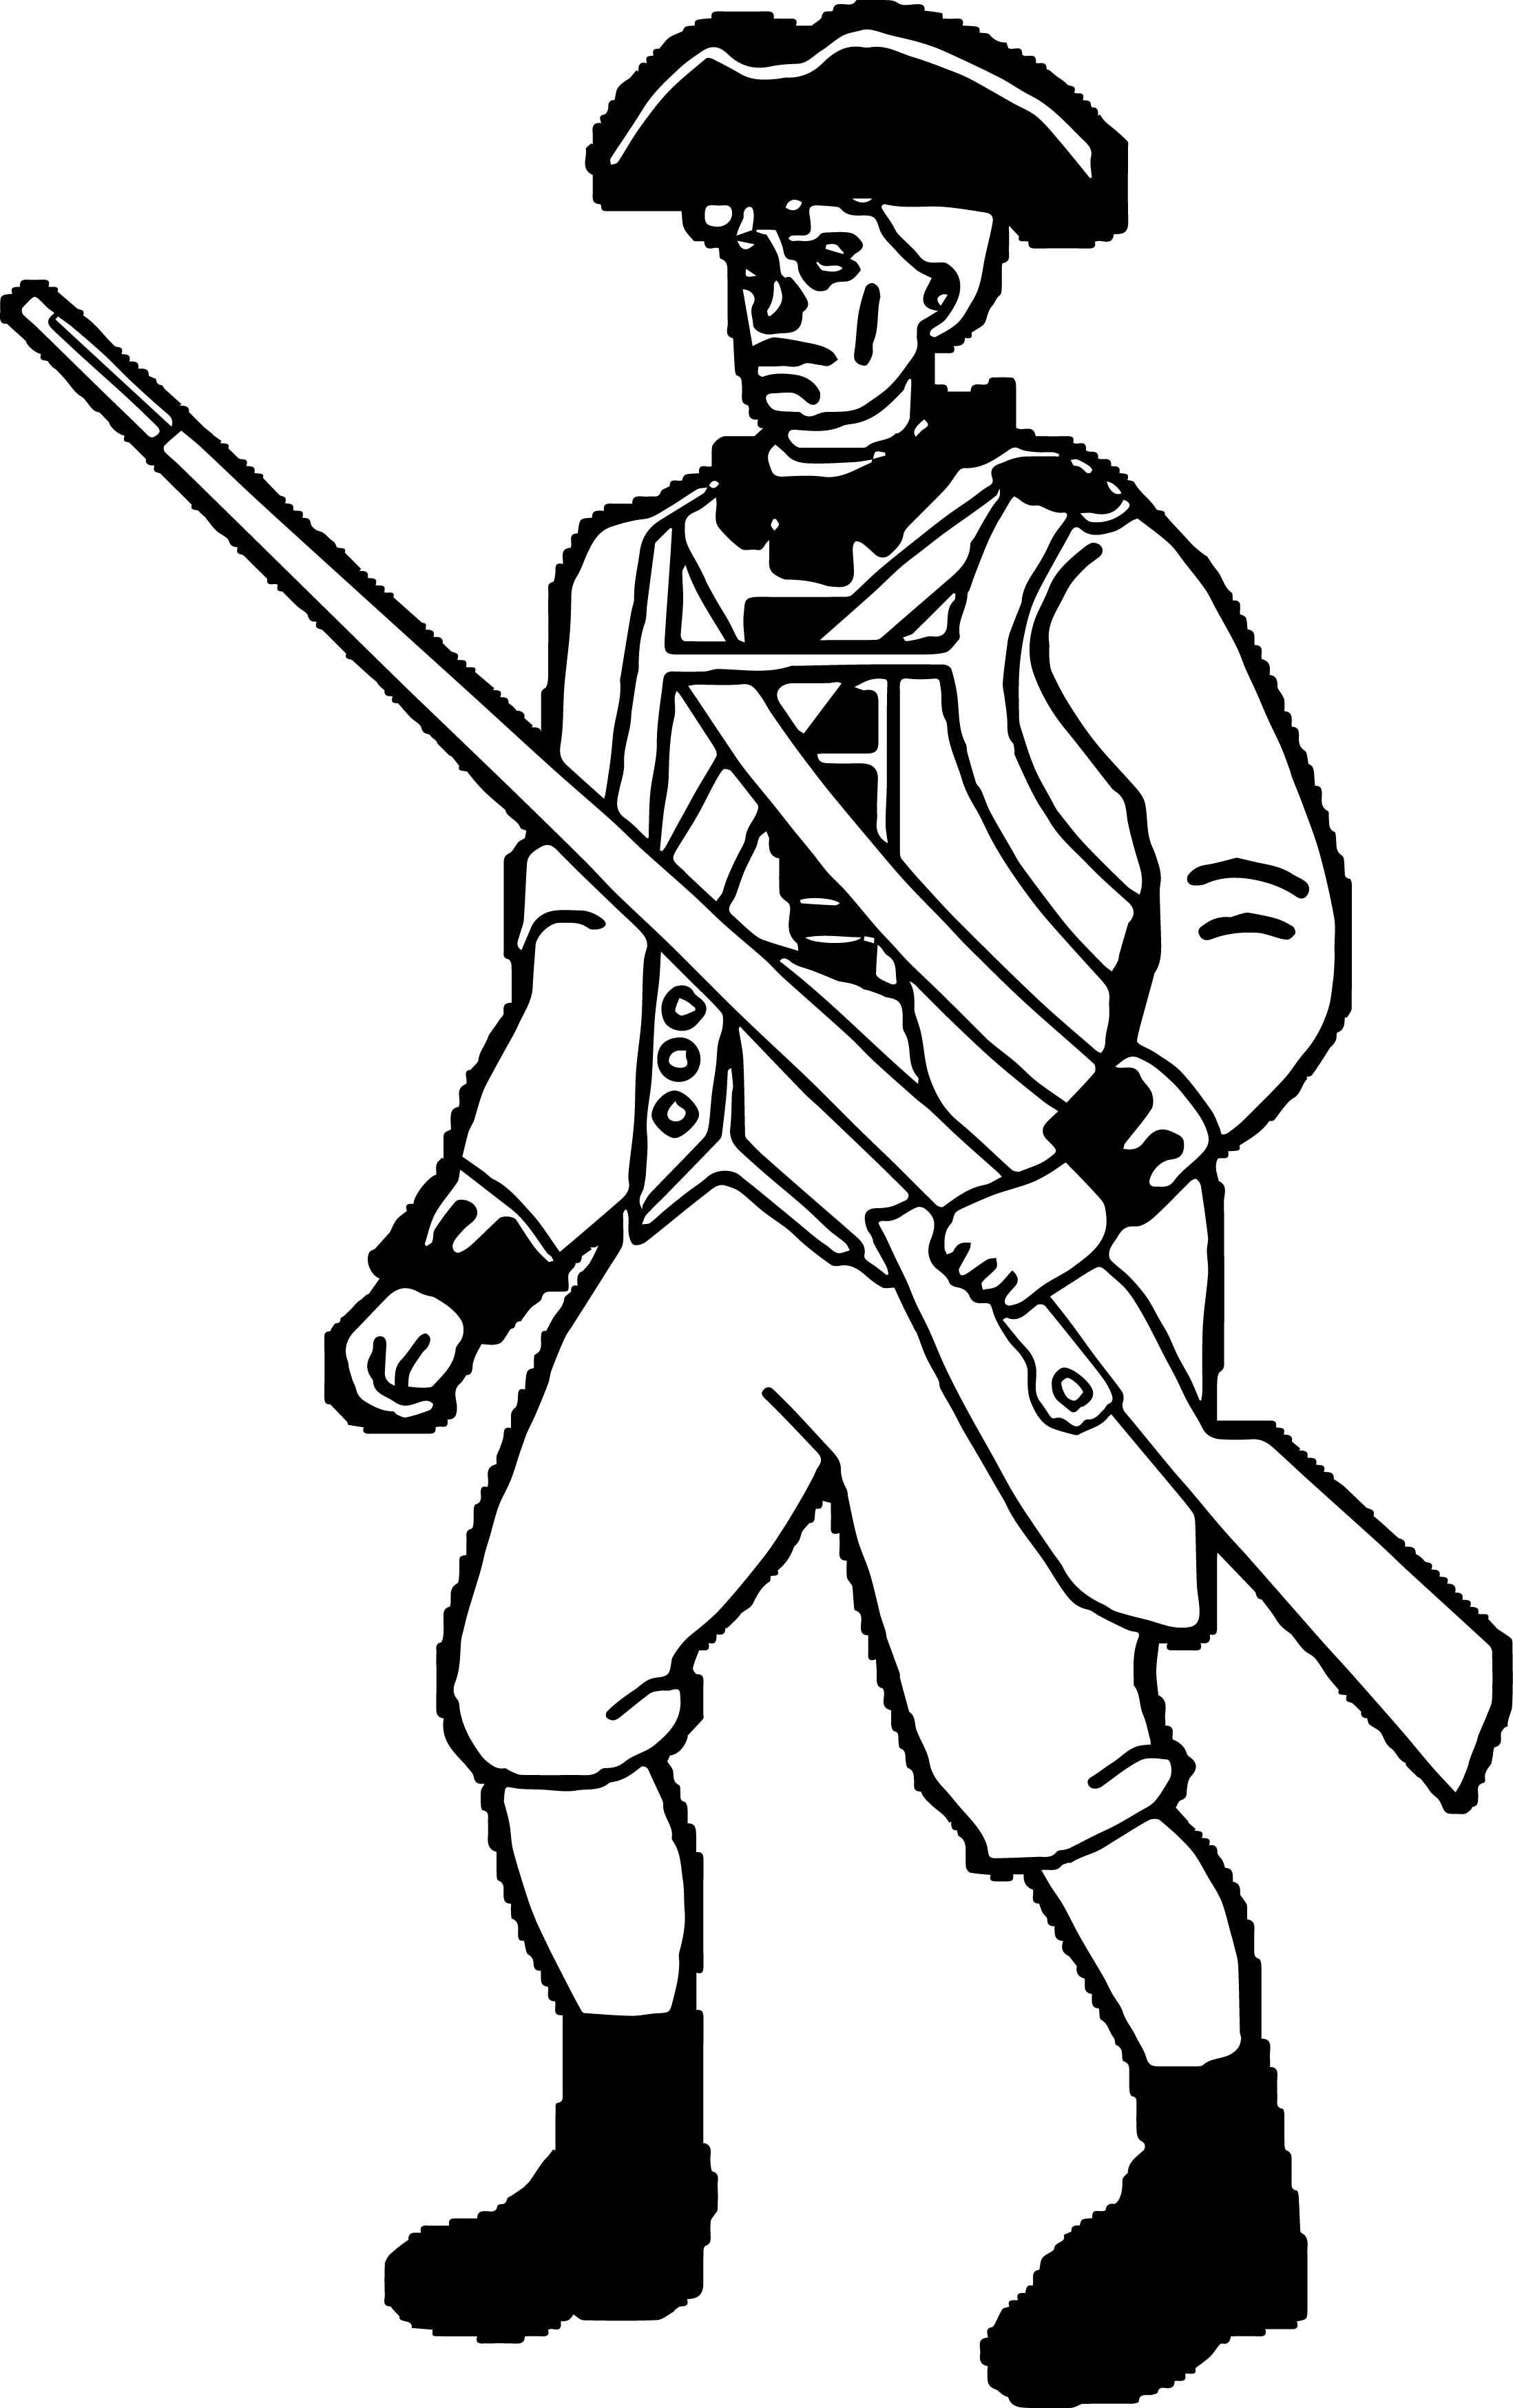 American Revolution Coloring Pages At Getdrawings Com Free For